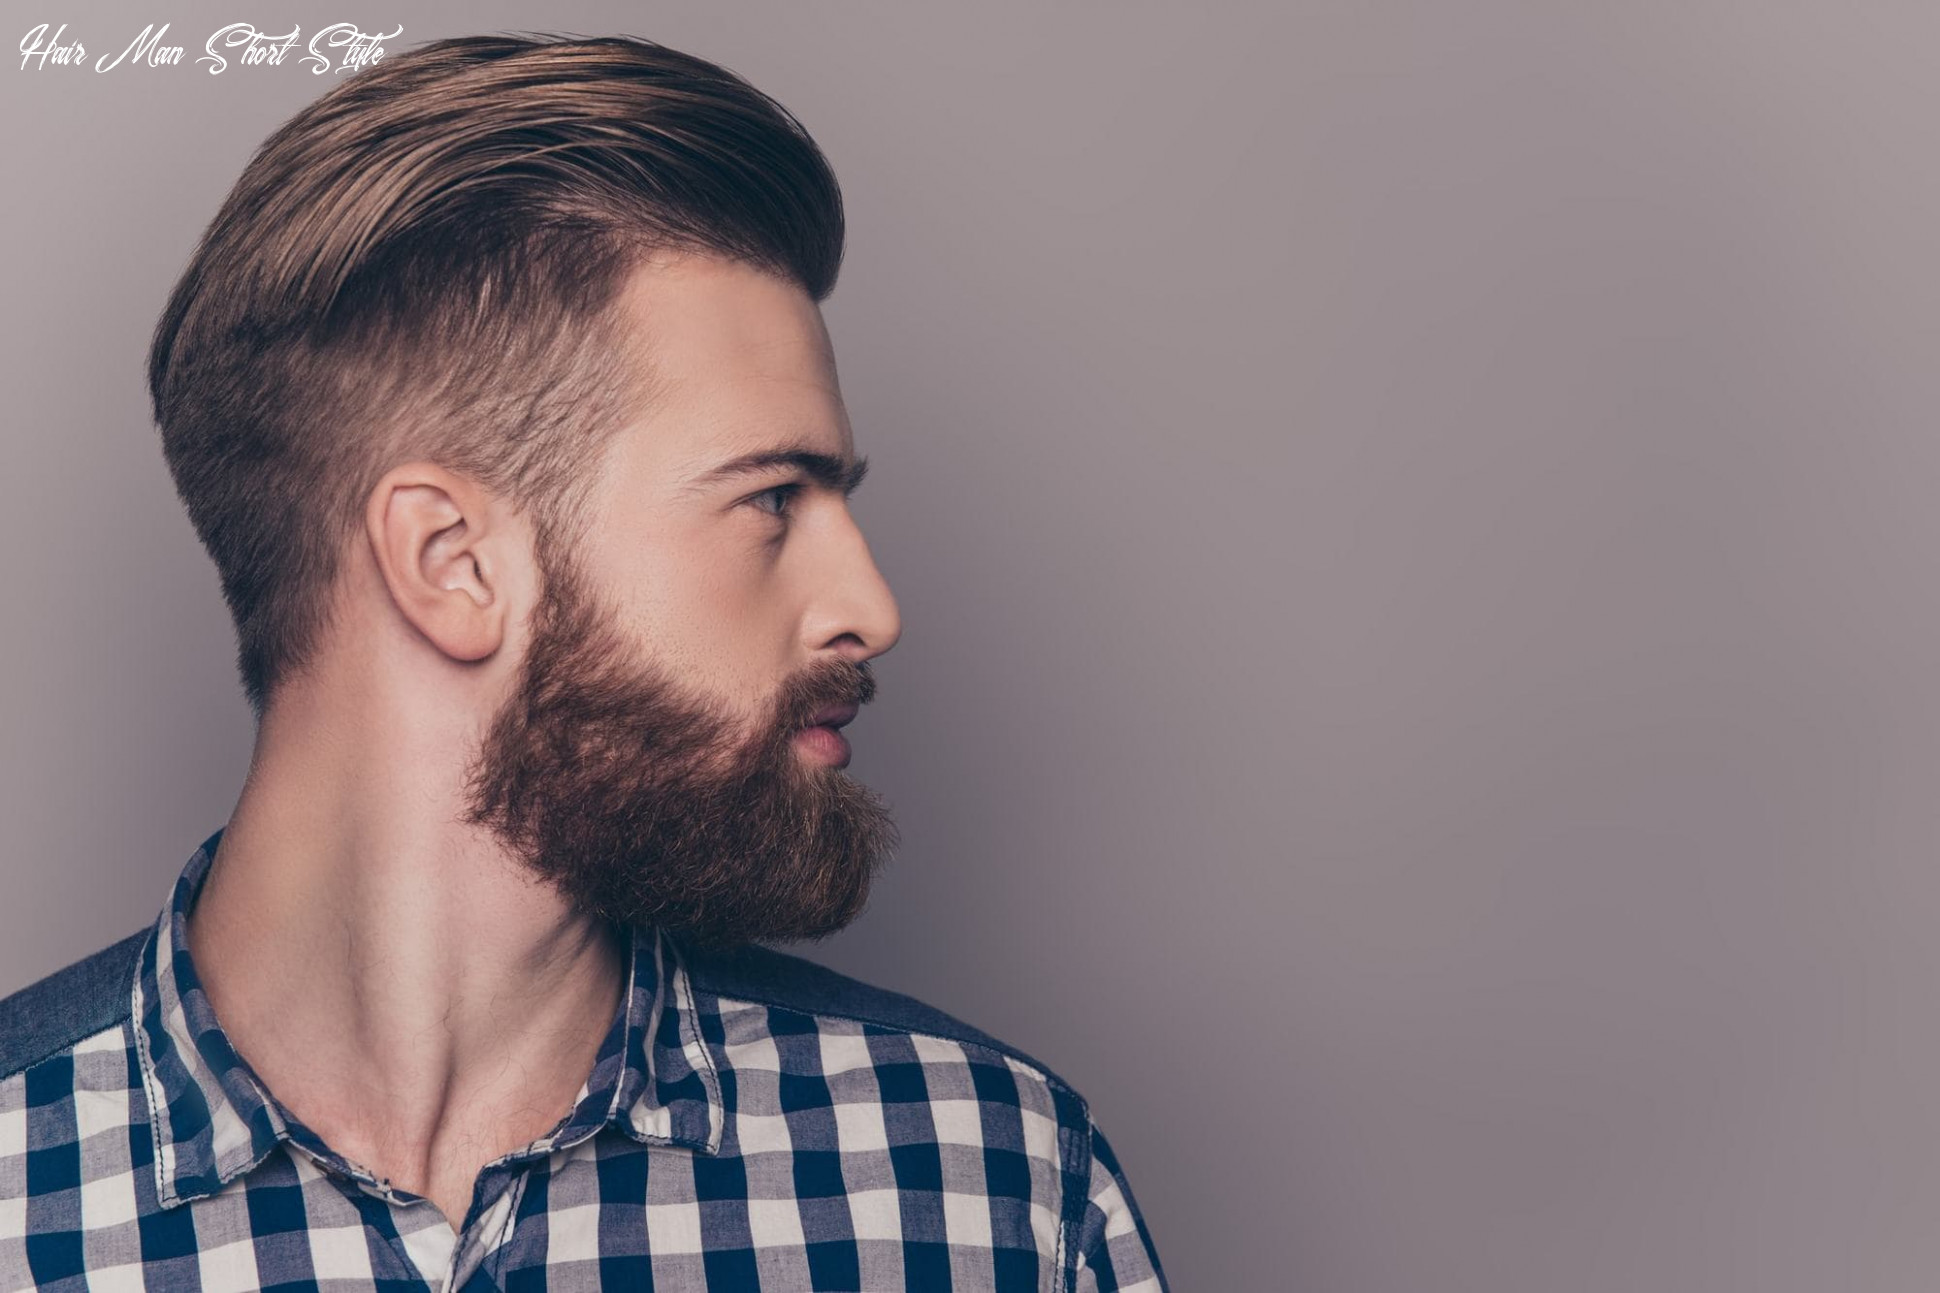 Short hairstyles for men with thick hair: 11 styles we love hair man short style